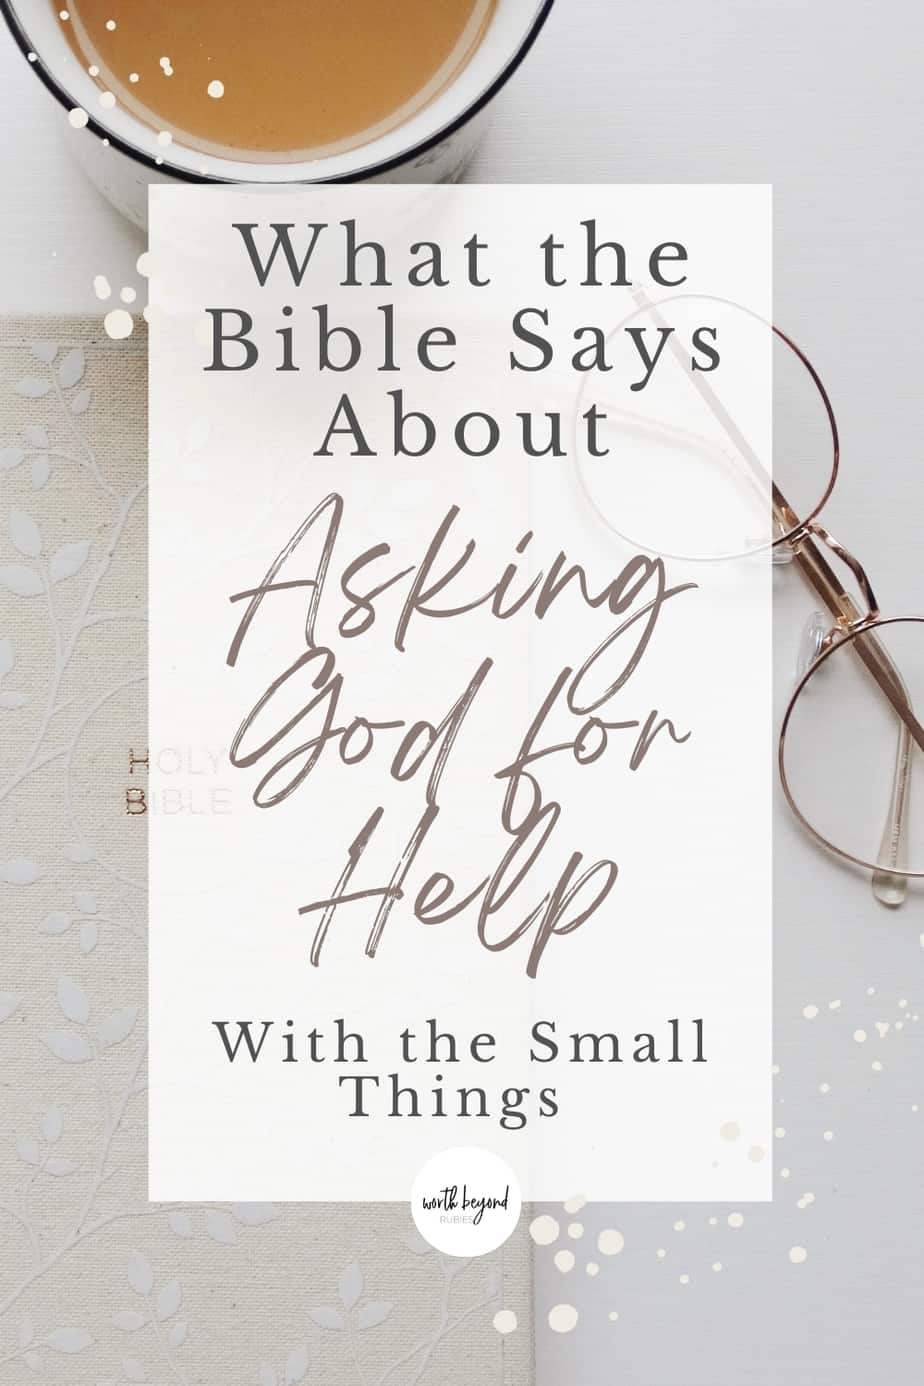 an image of a Bible, glasses and a tea cup and text that says What the Bible Says About Asking God for Help With the Small Things